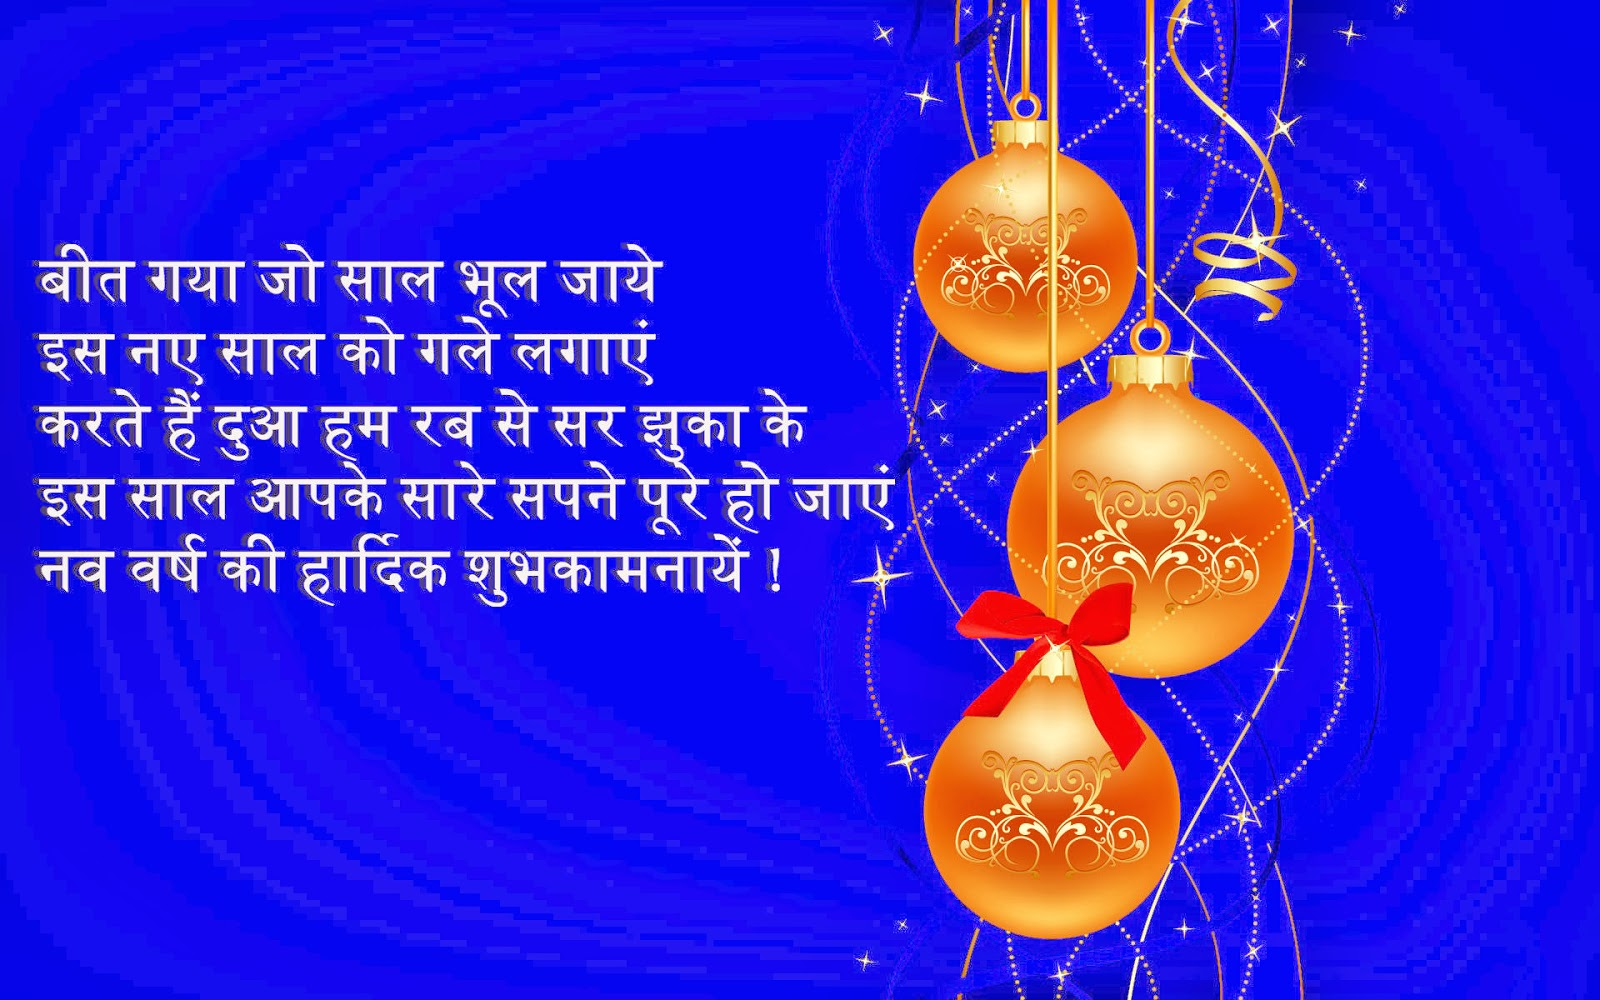 Gujarati Tami Marathi English New Year Messages Language For 2014